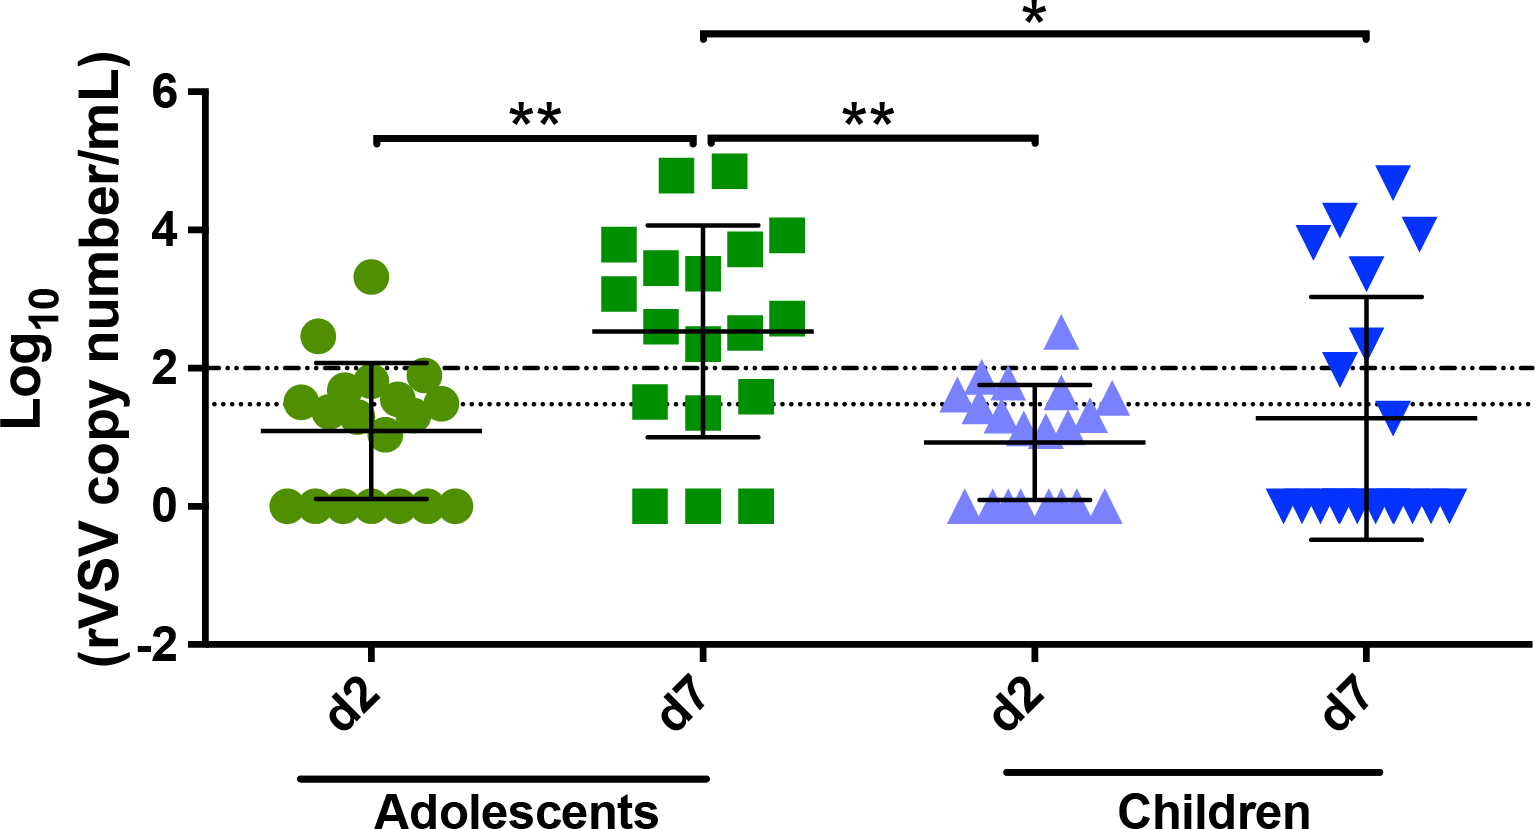 Viral load in saliva for children and adolescents.